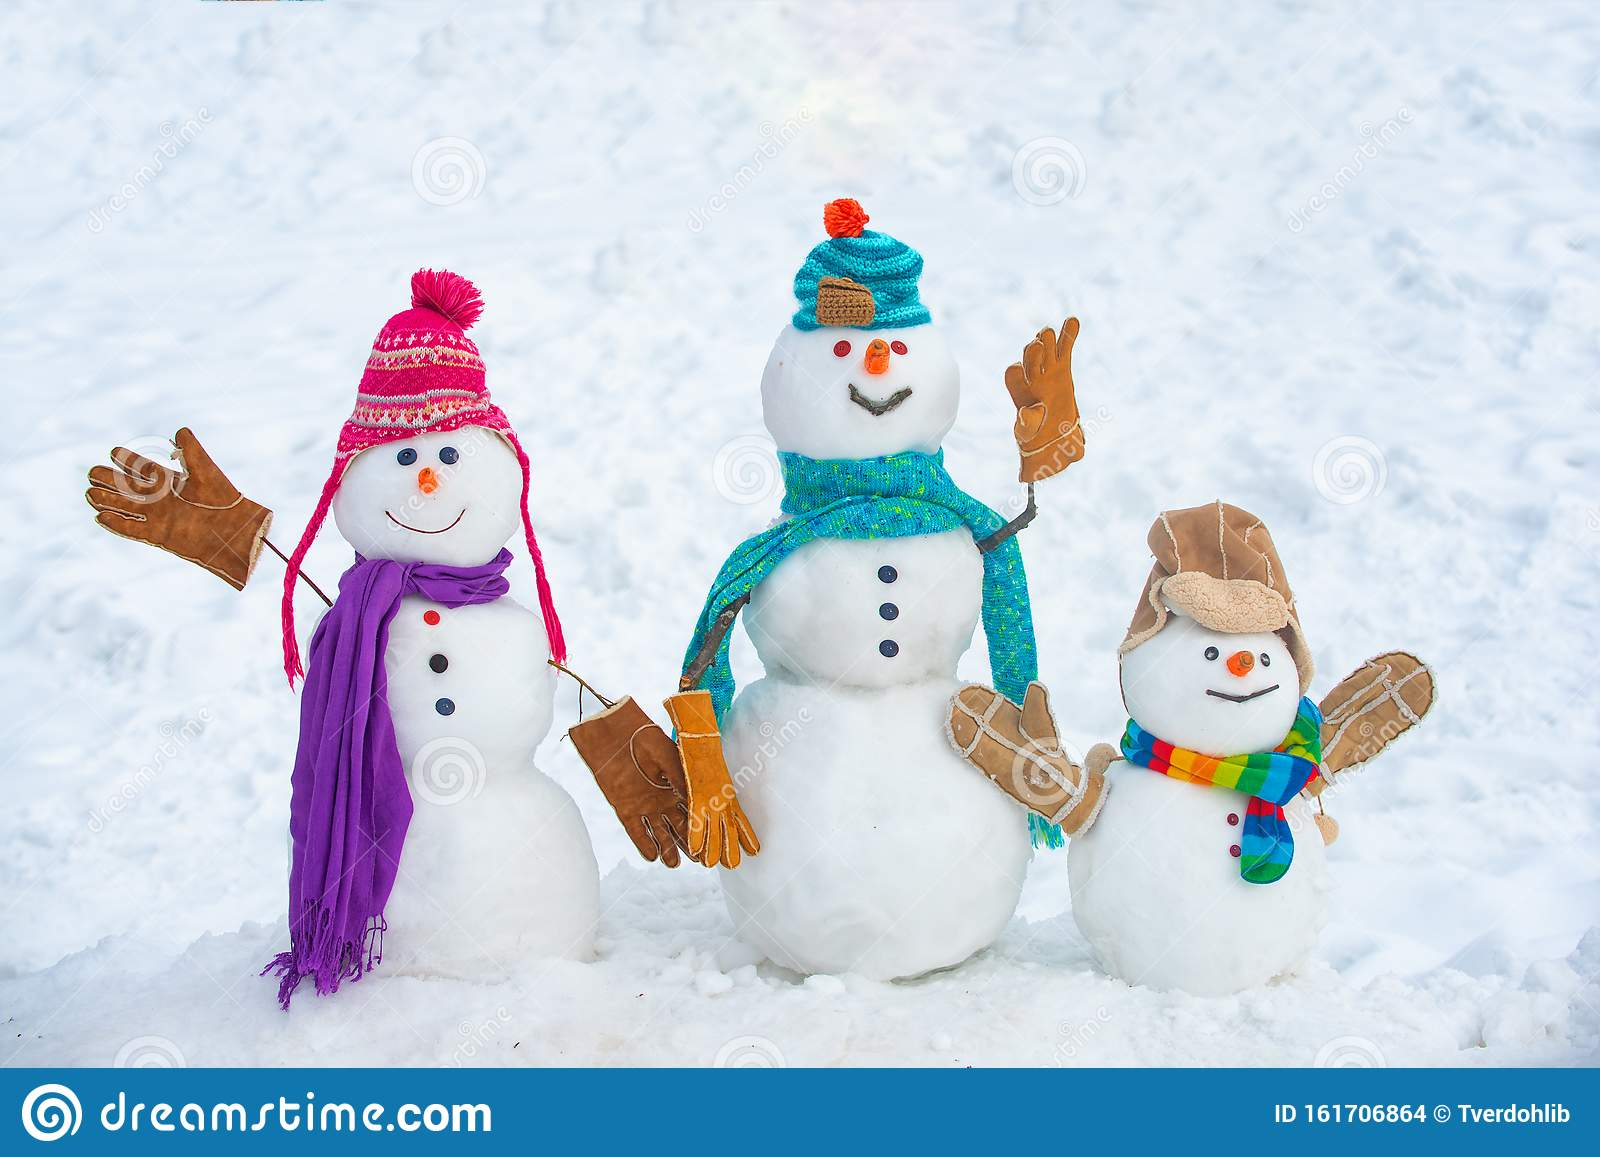 Shnow On Christmas 2020 ? Winter Time Scene. Snowmen. Christmas Background With Snowman